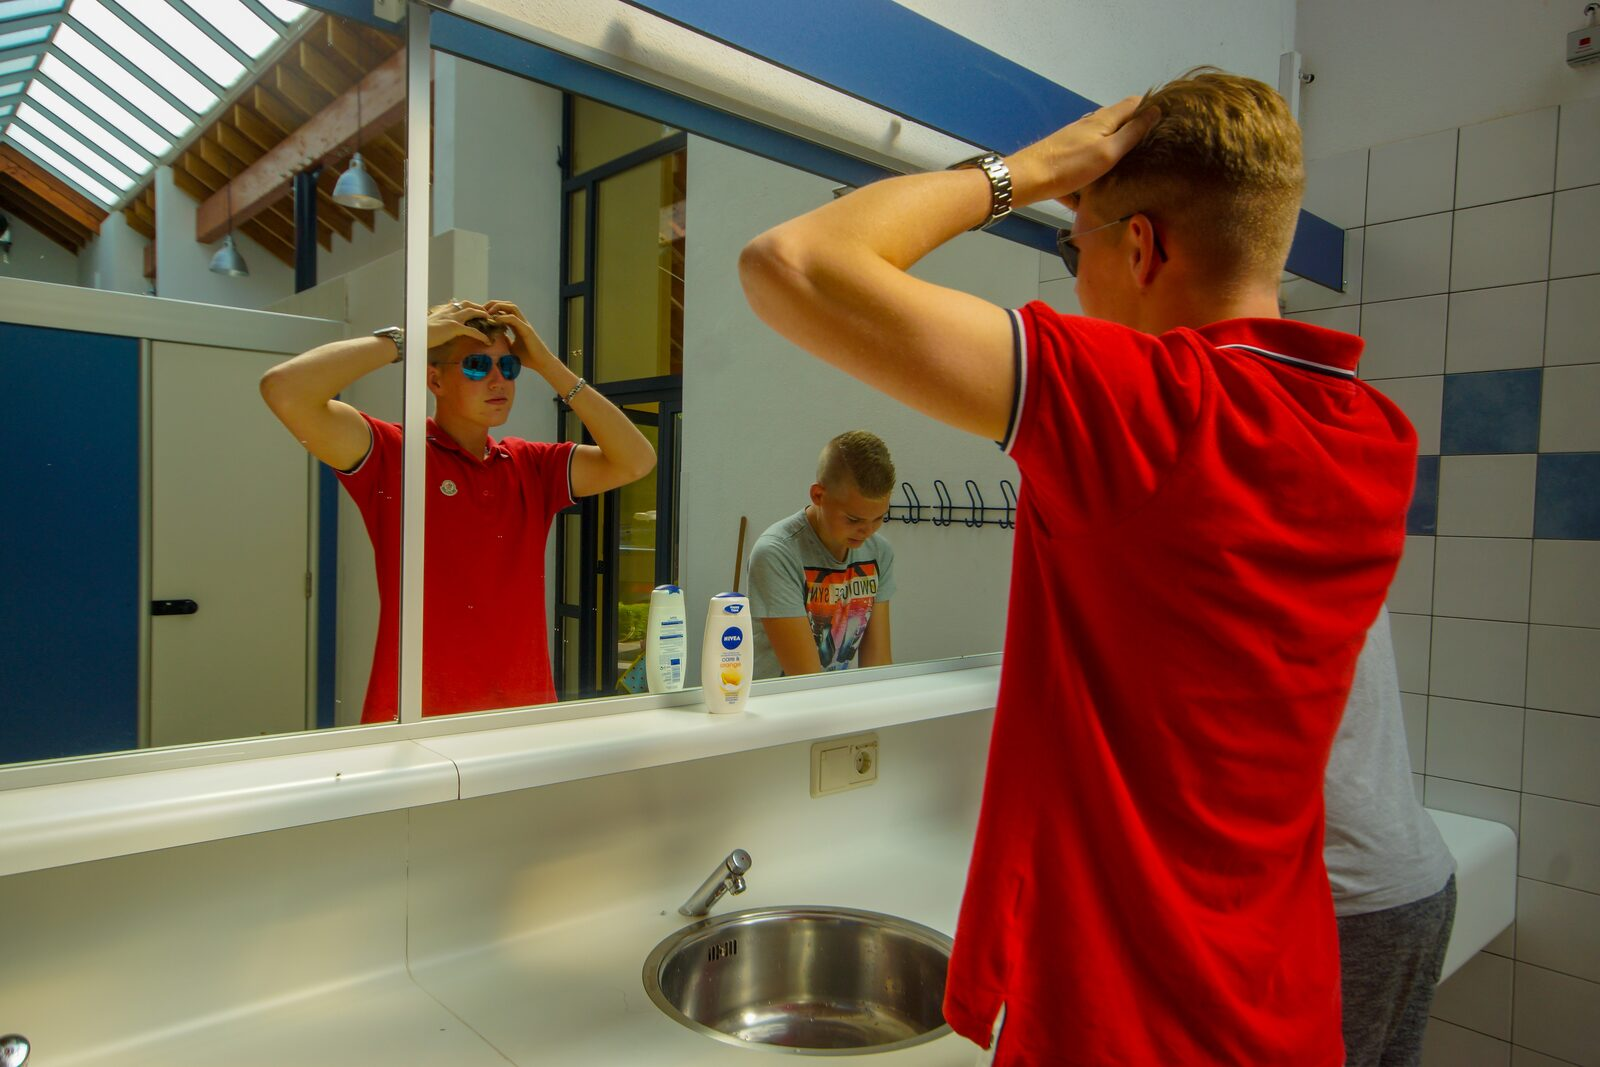 Sanitary facilities Walsdorf boys in front of mirror